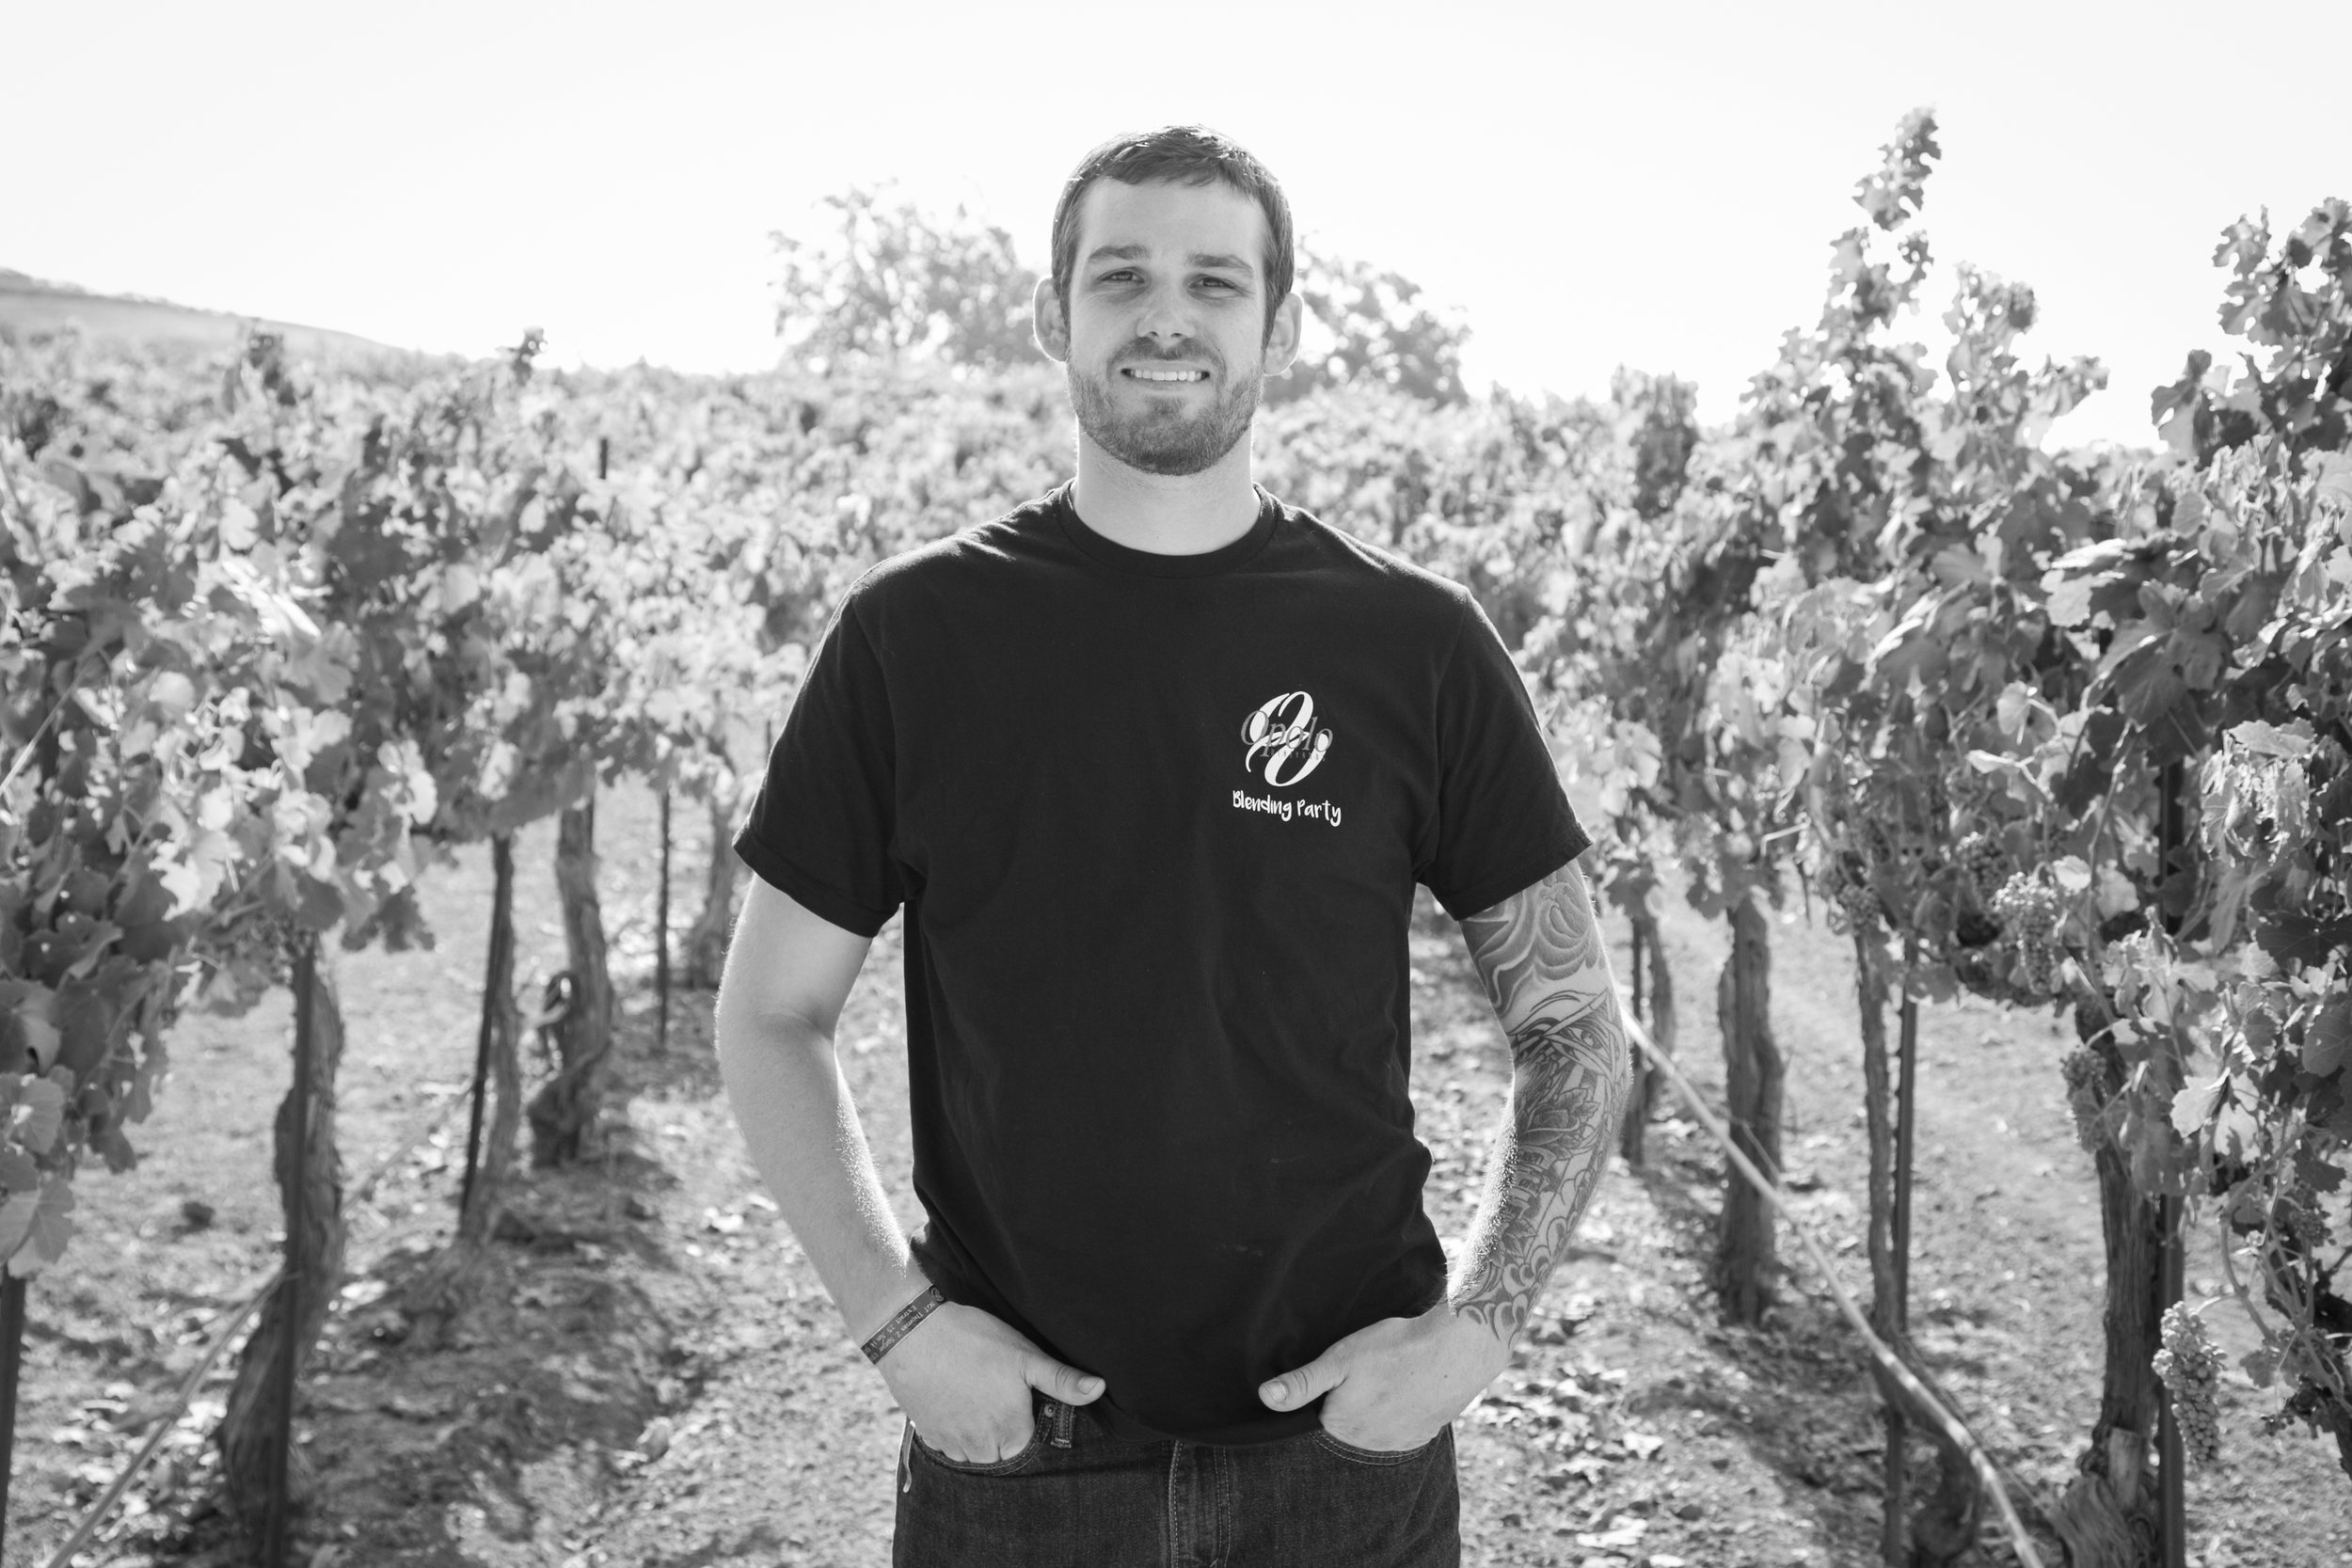 Kevin Coulton    Head Distiller   Joining the team in 2016, Kevin's drive and passion towards hand crafting one of a kind spirits has helped Willow Creek Distillery expand. A local fixture, Kevin comes from a military background bringing both attention to detail and creativity to our ever growing venture.